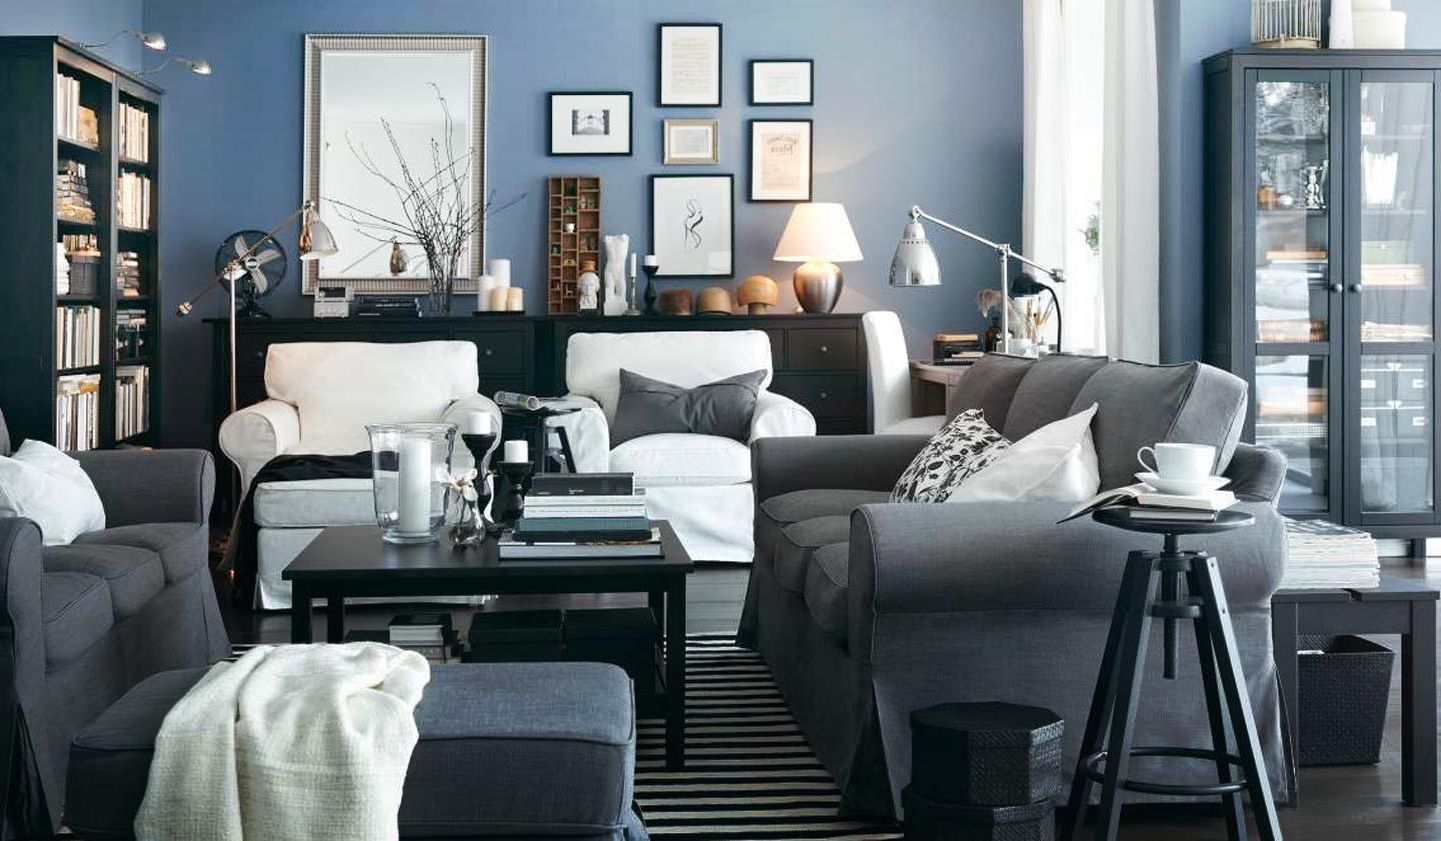 White Teal grey living room pictures advise to wear in everyday in 2019